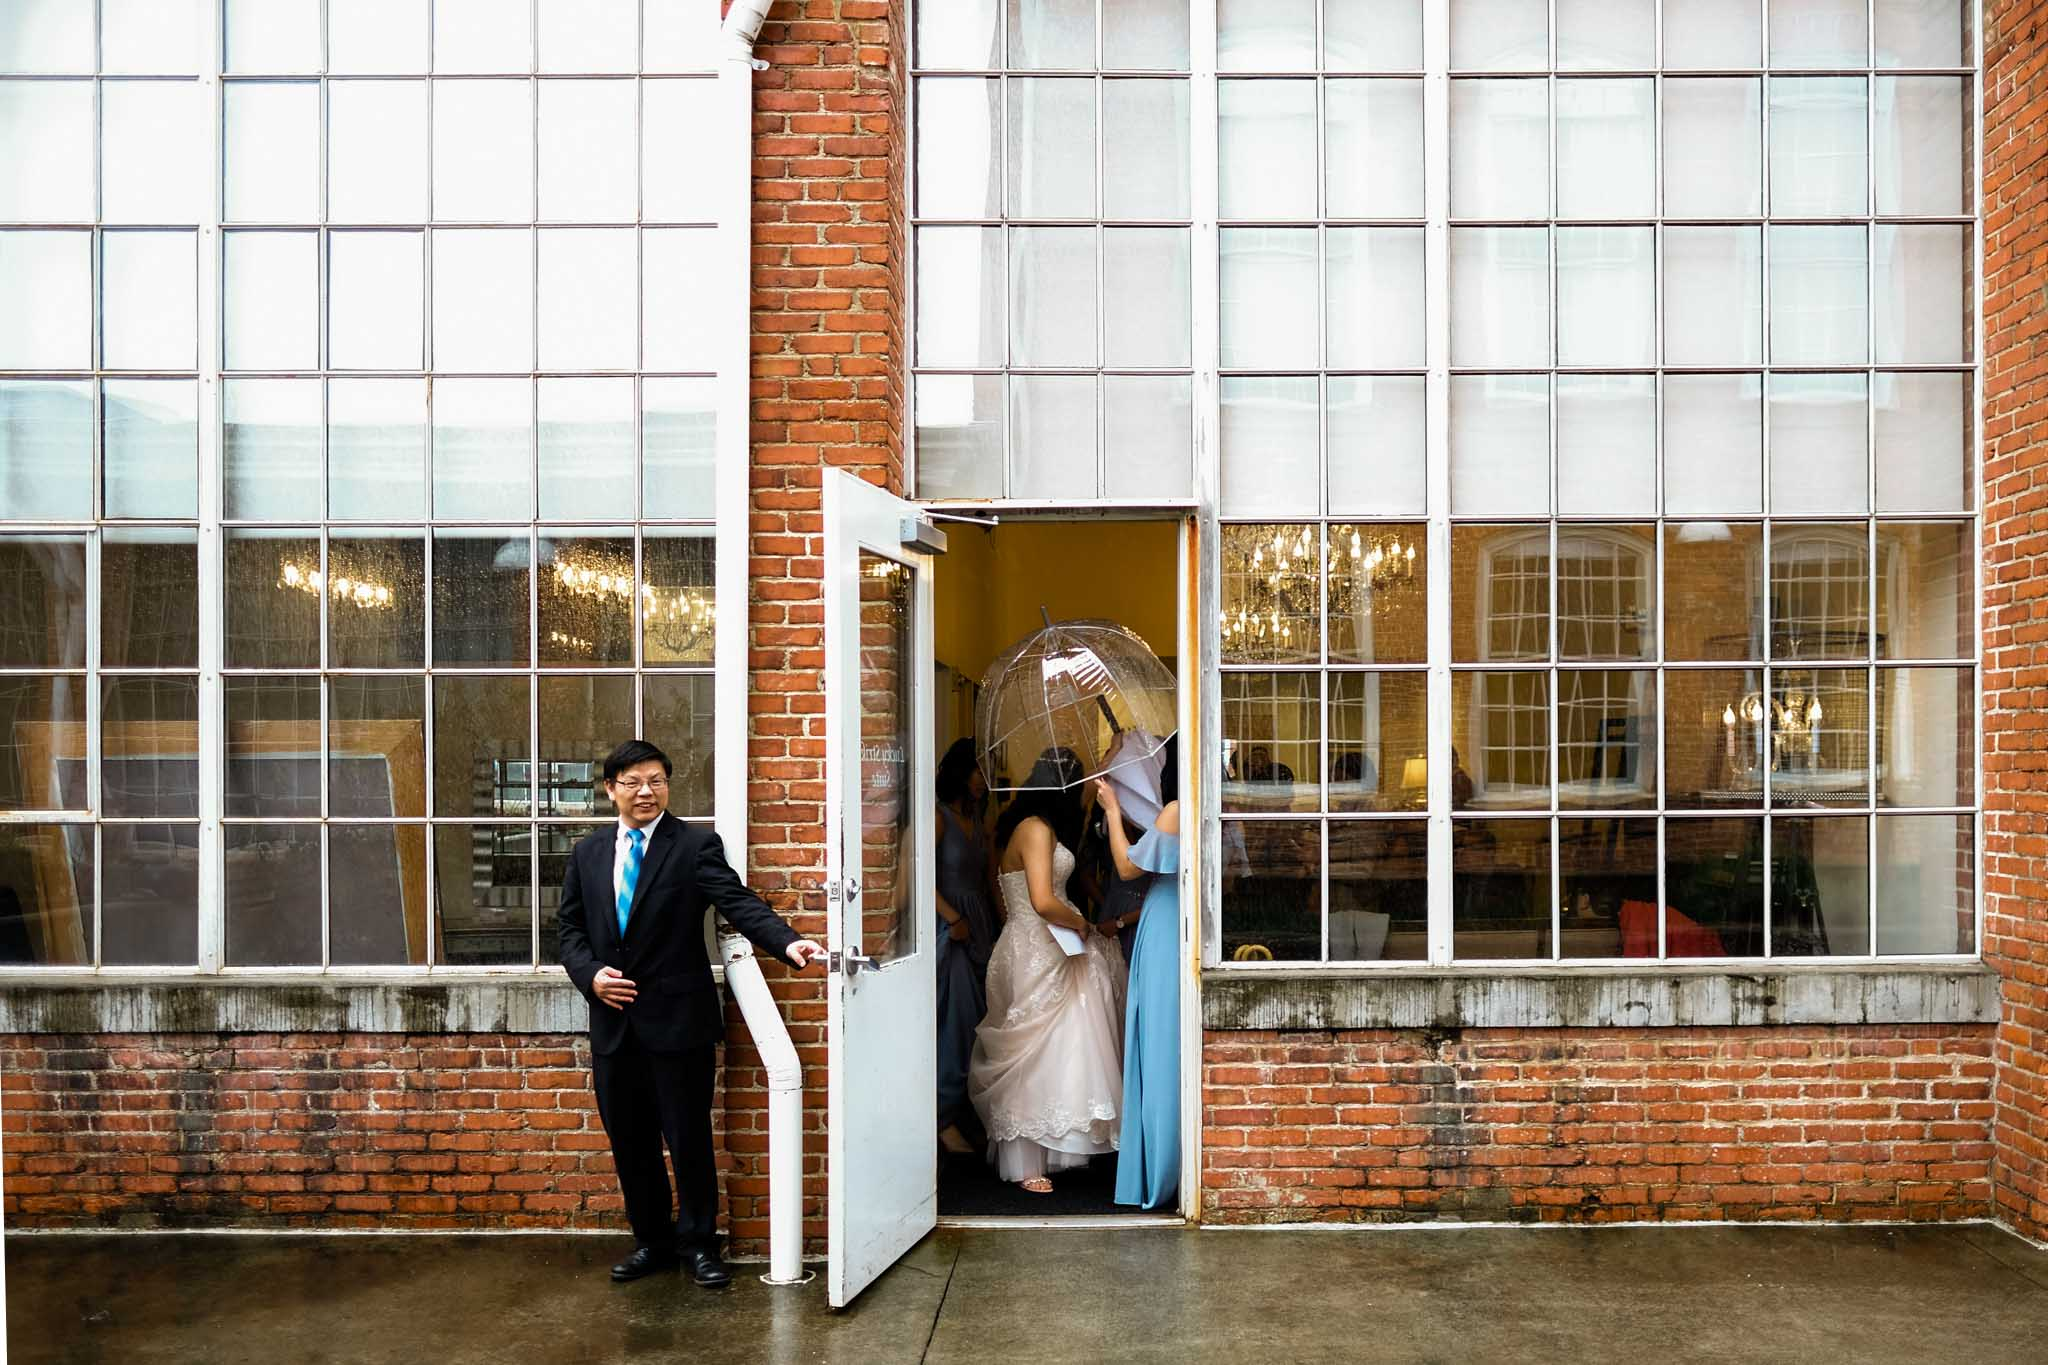 Bridesmaids and bride leaving bridal suite | The Cotton Room | Durham Wedding Photographer | By G. Lin Photography